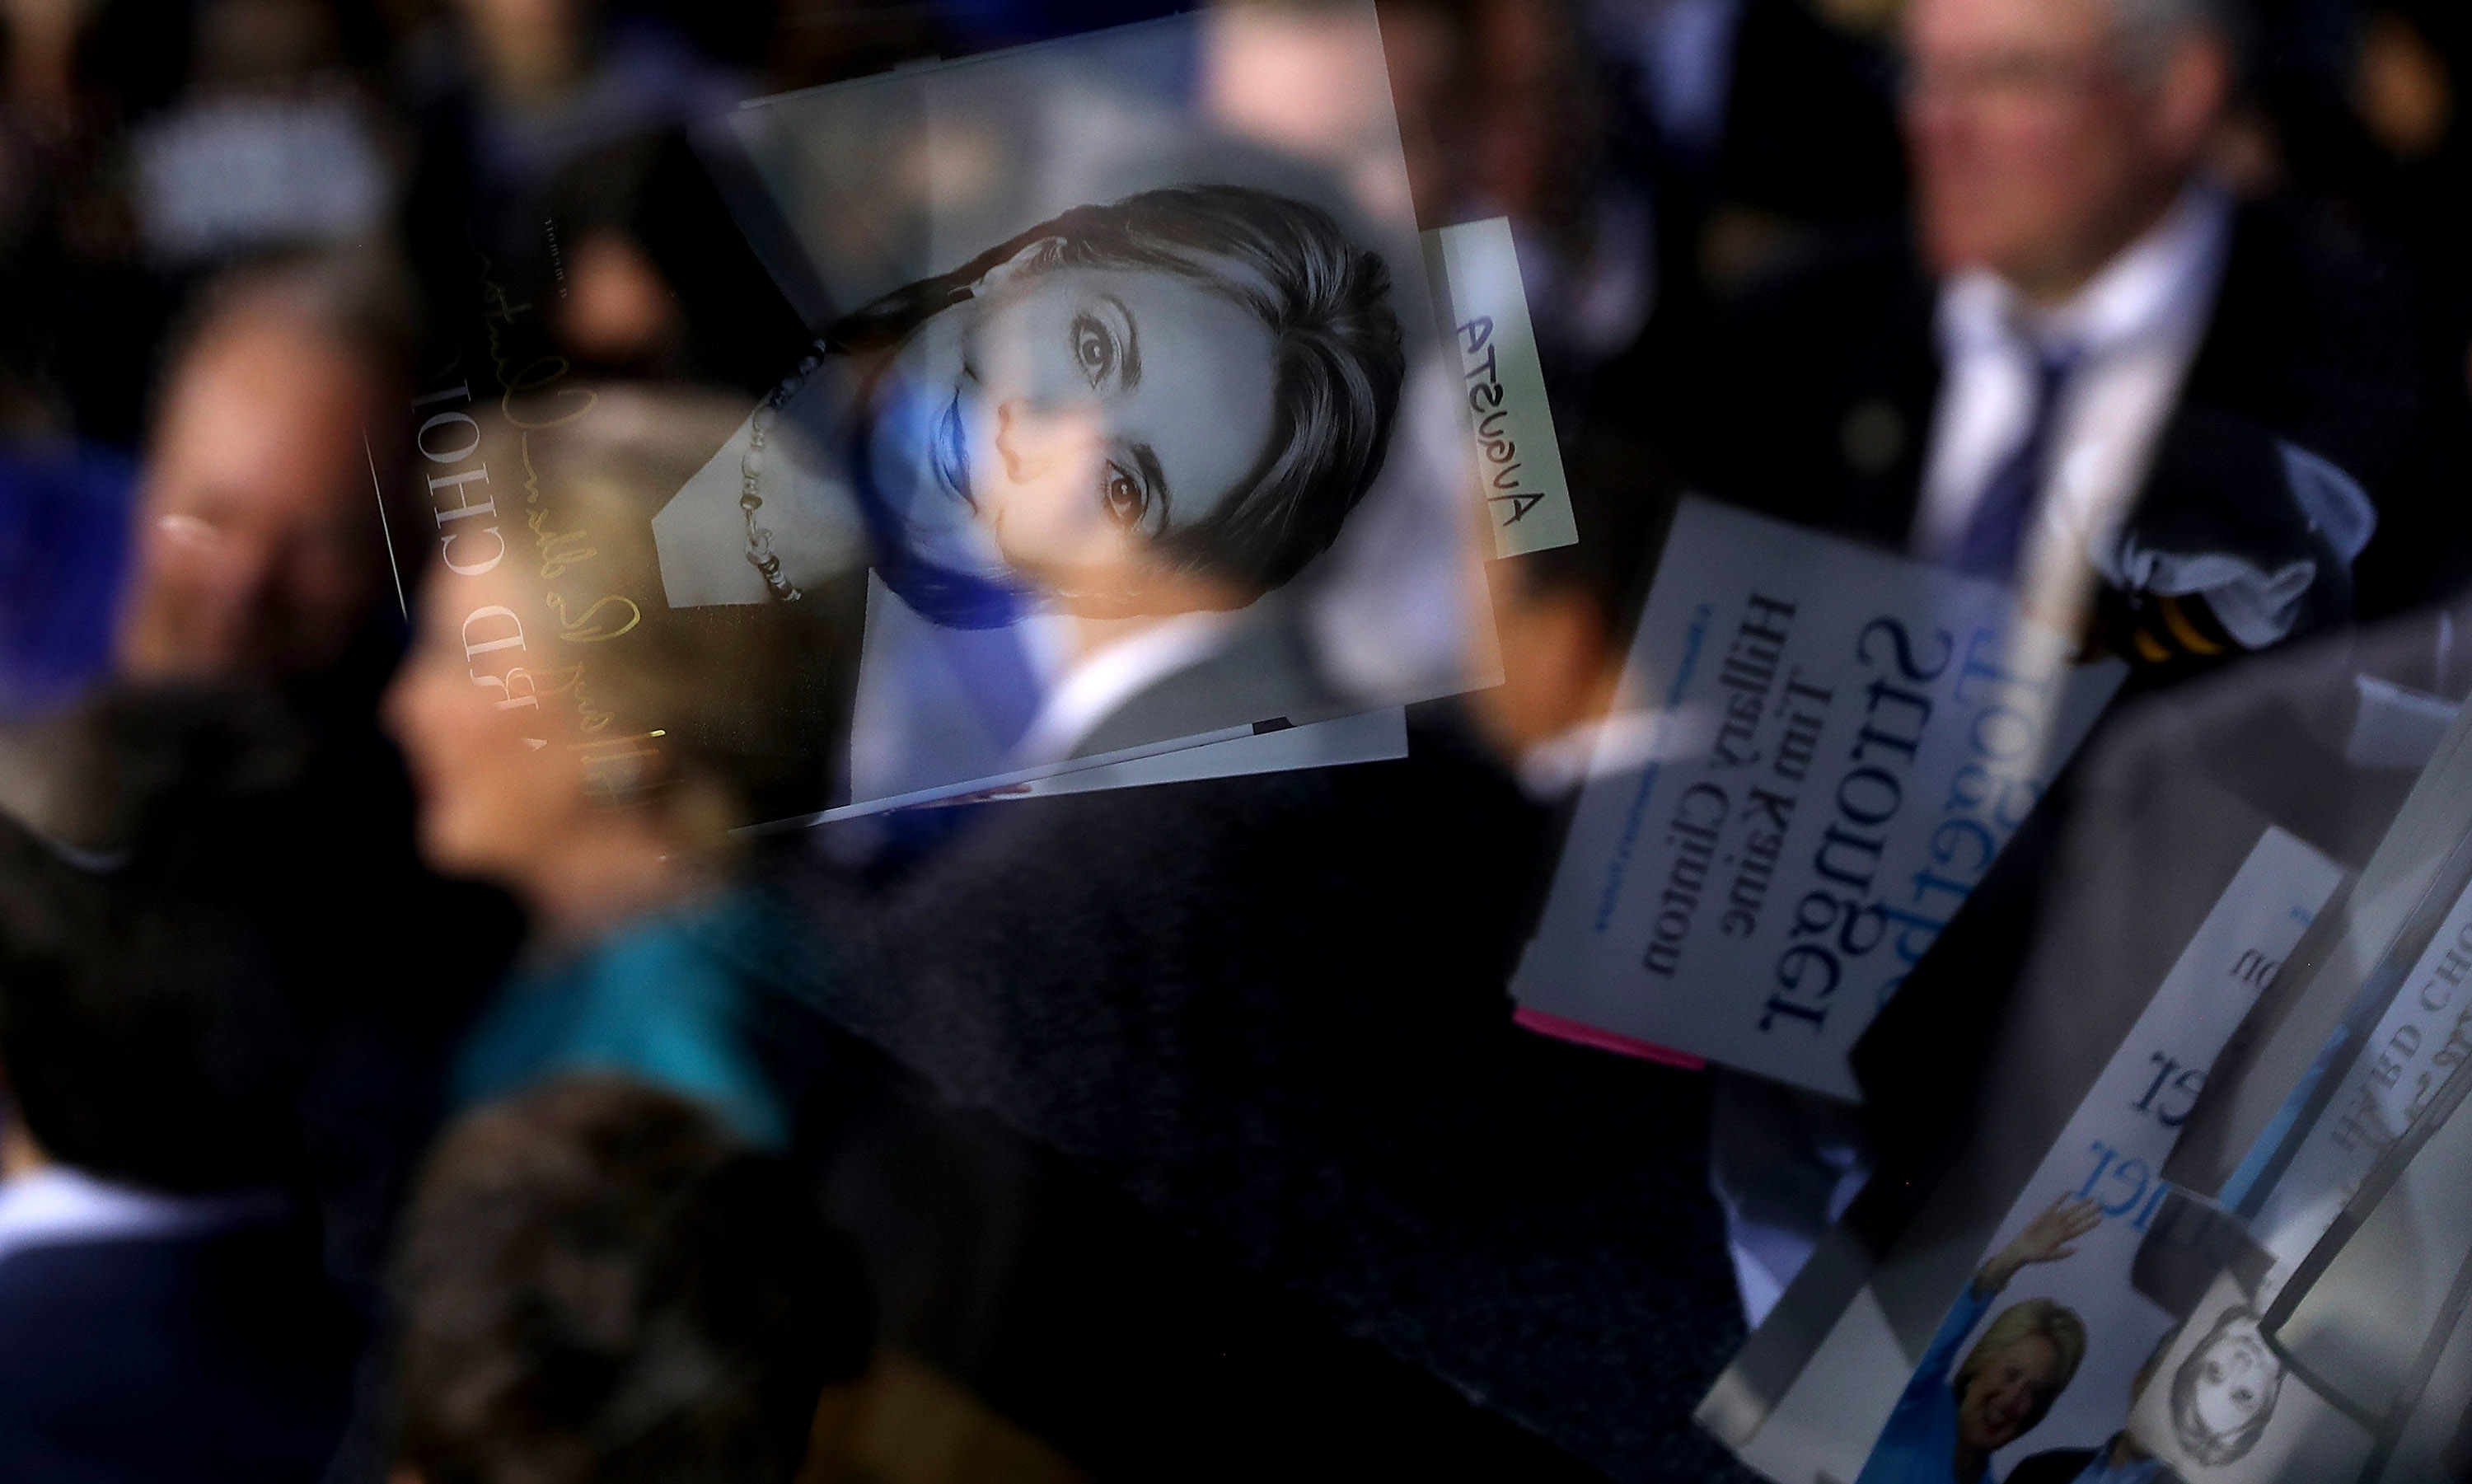 Books reflected in a teleprompter during a Hillary Clinton campaign rally in the 2016 election (Photo: Justin Sullivan/Getty)